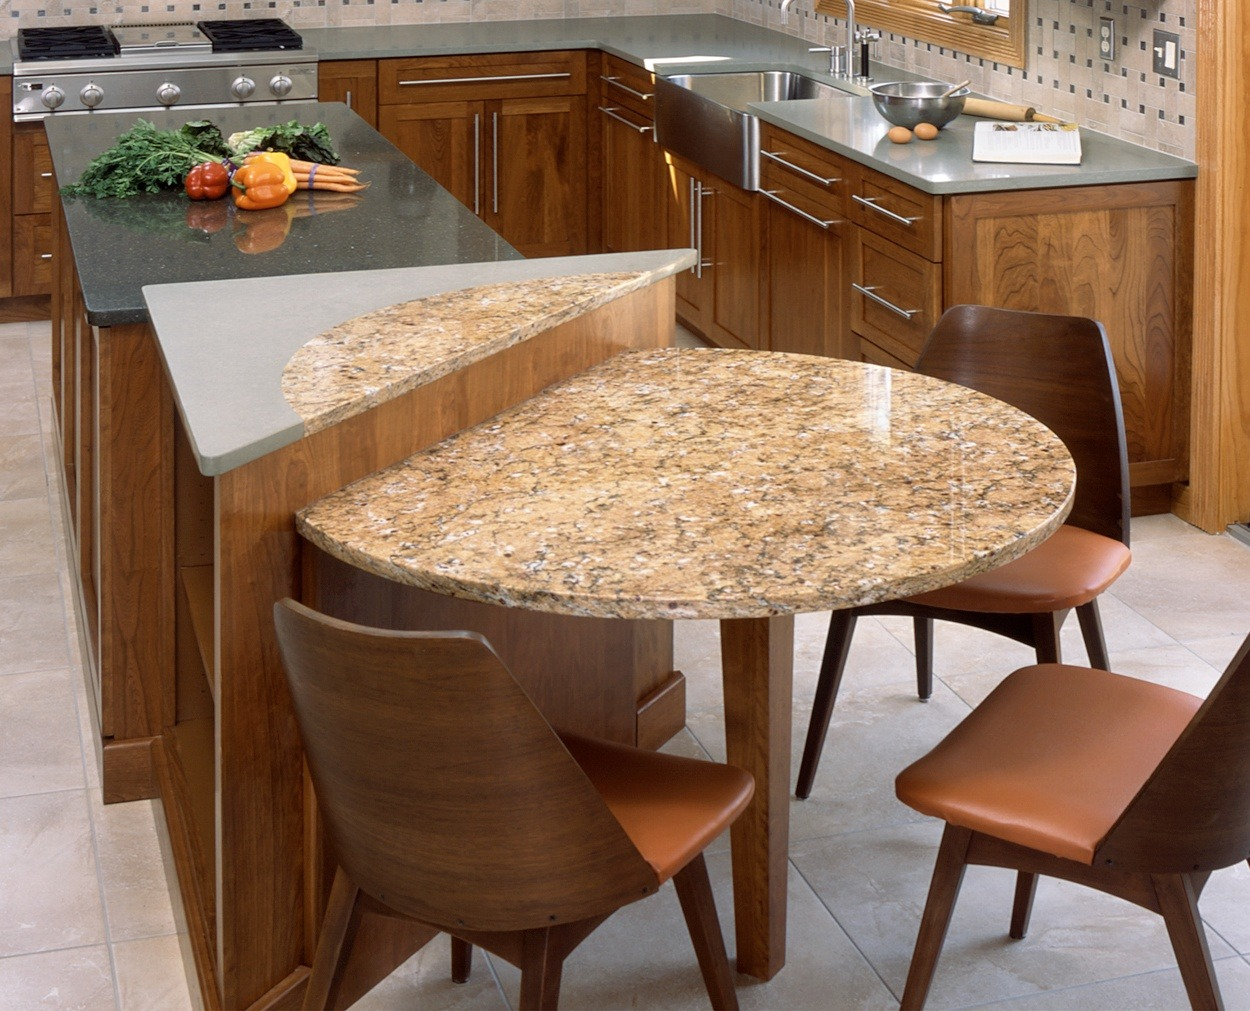 Two level island with a circle detail that goes from one level to the other by Clark Construction's lead designer.